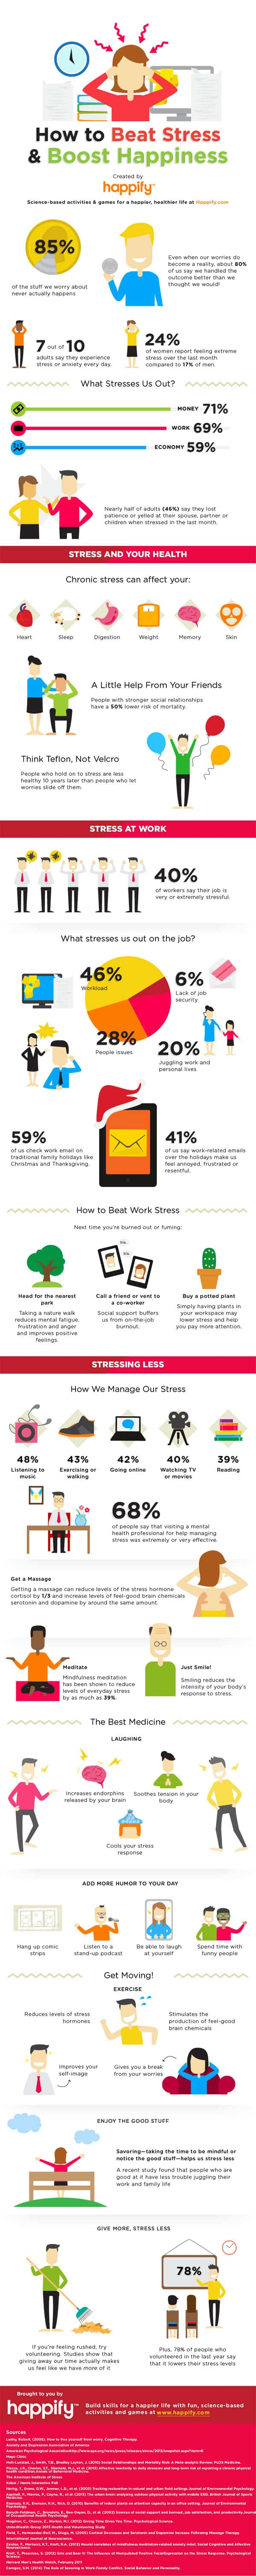 How-to-stress-less-and-find-happiness-infographic